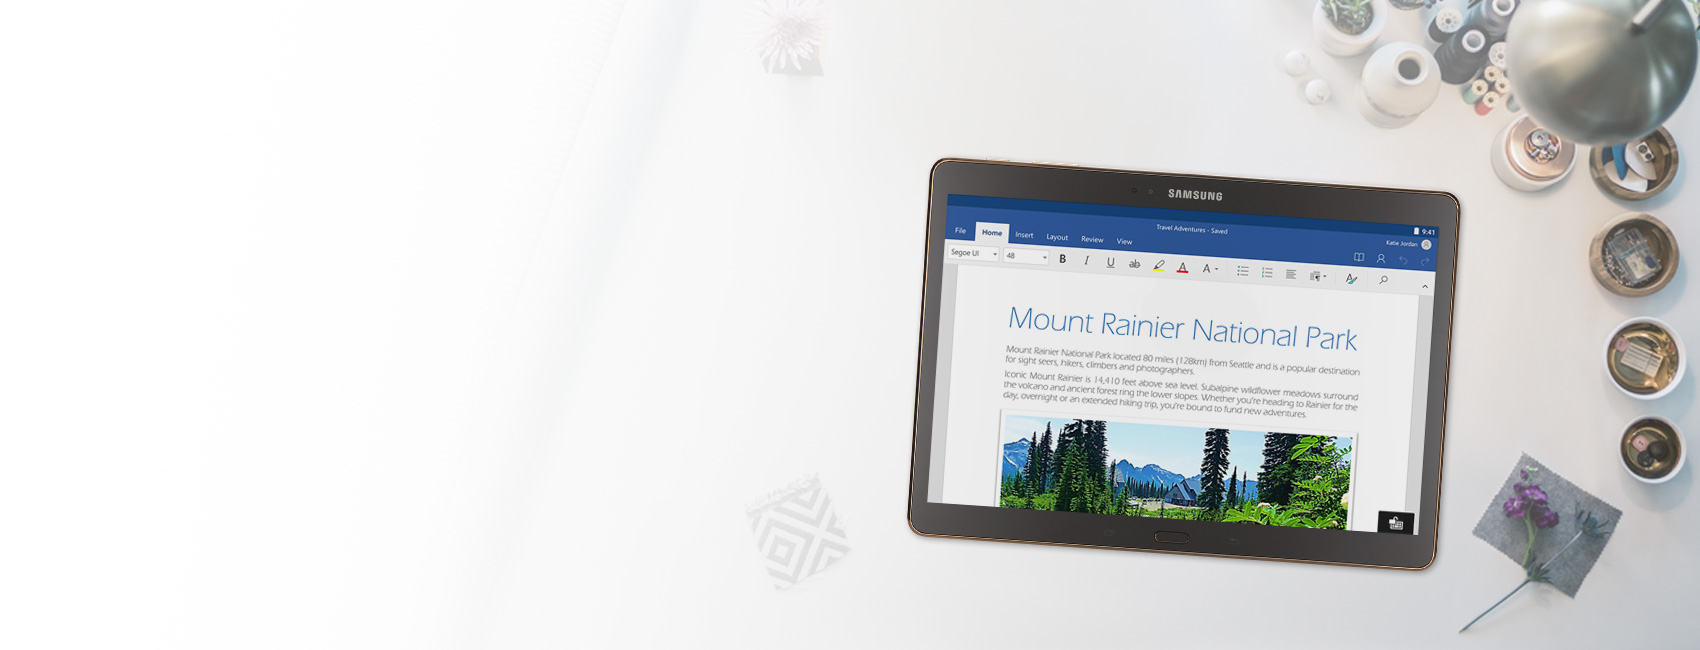 A tablet displaying a Word document about Mount Rainier National Park